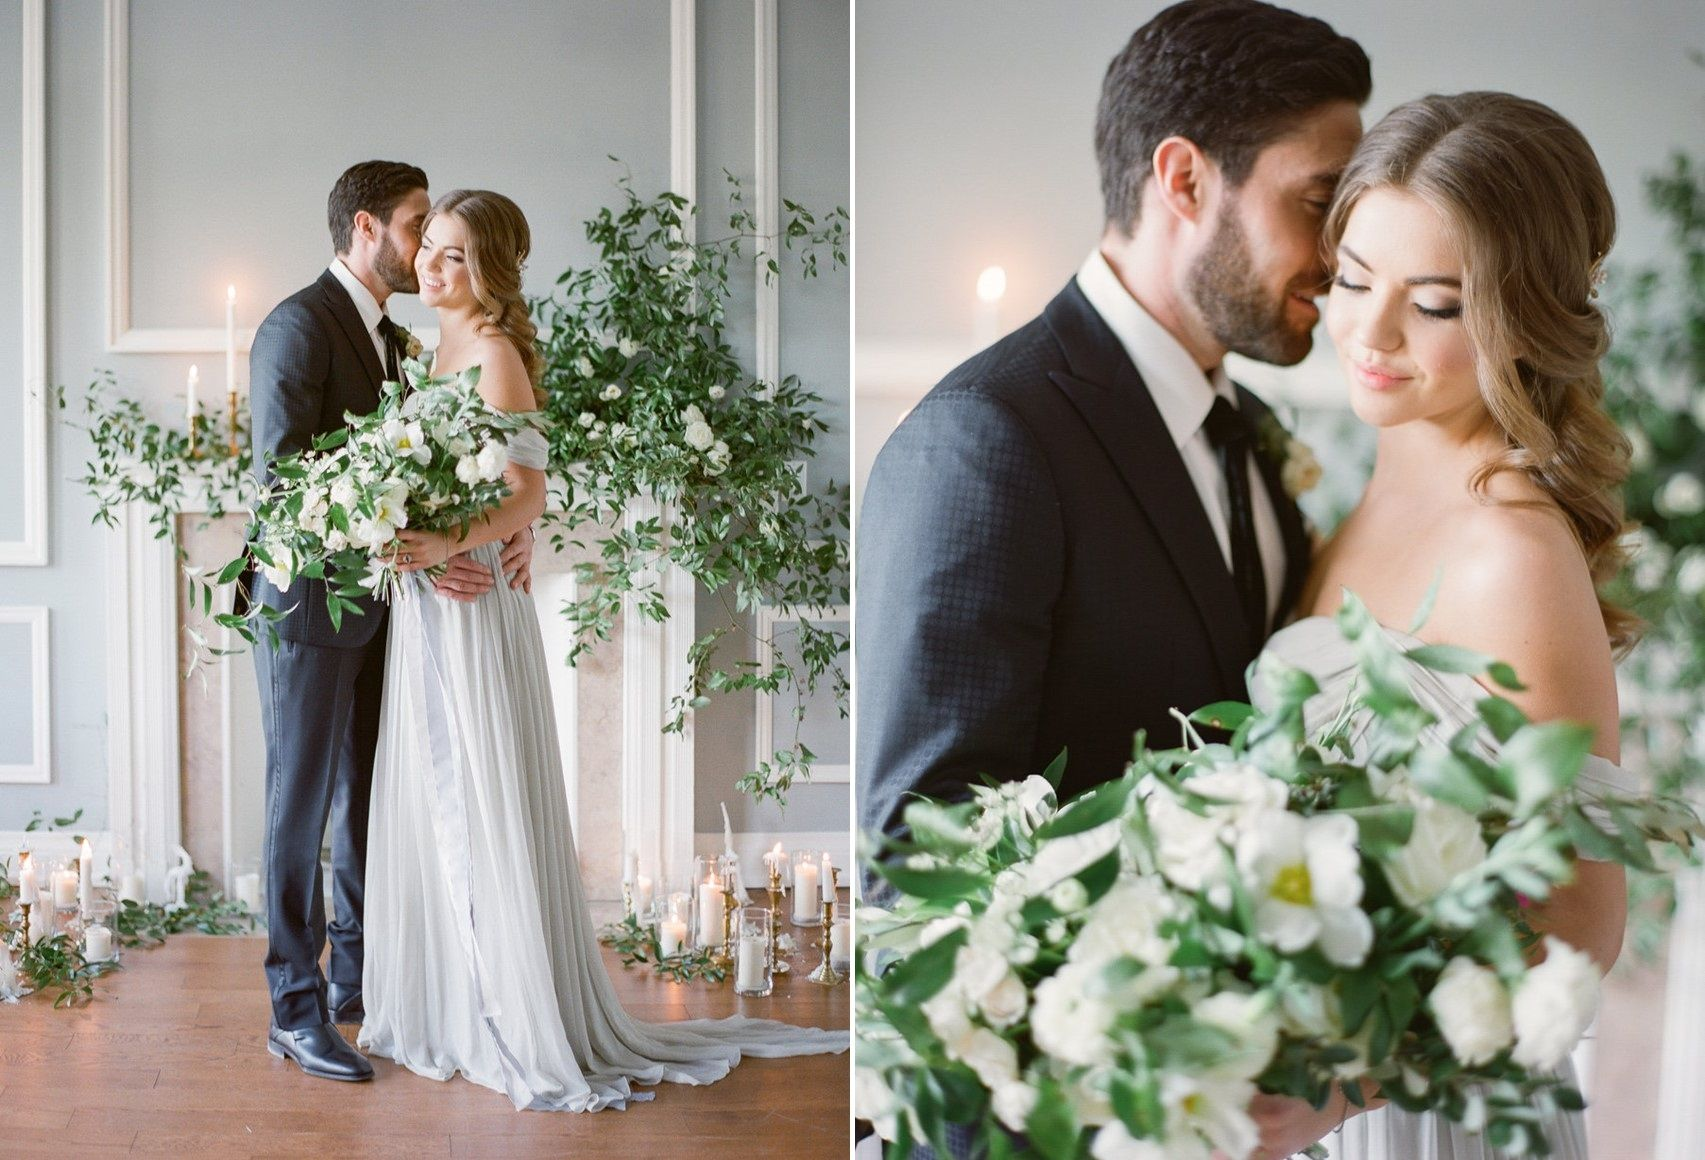 Modern Vintage Wedding Inspiration // Photography ~ Artiese Studios